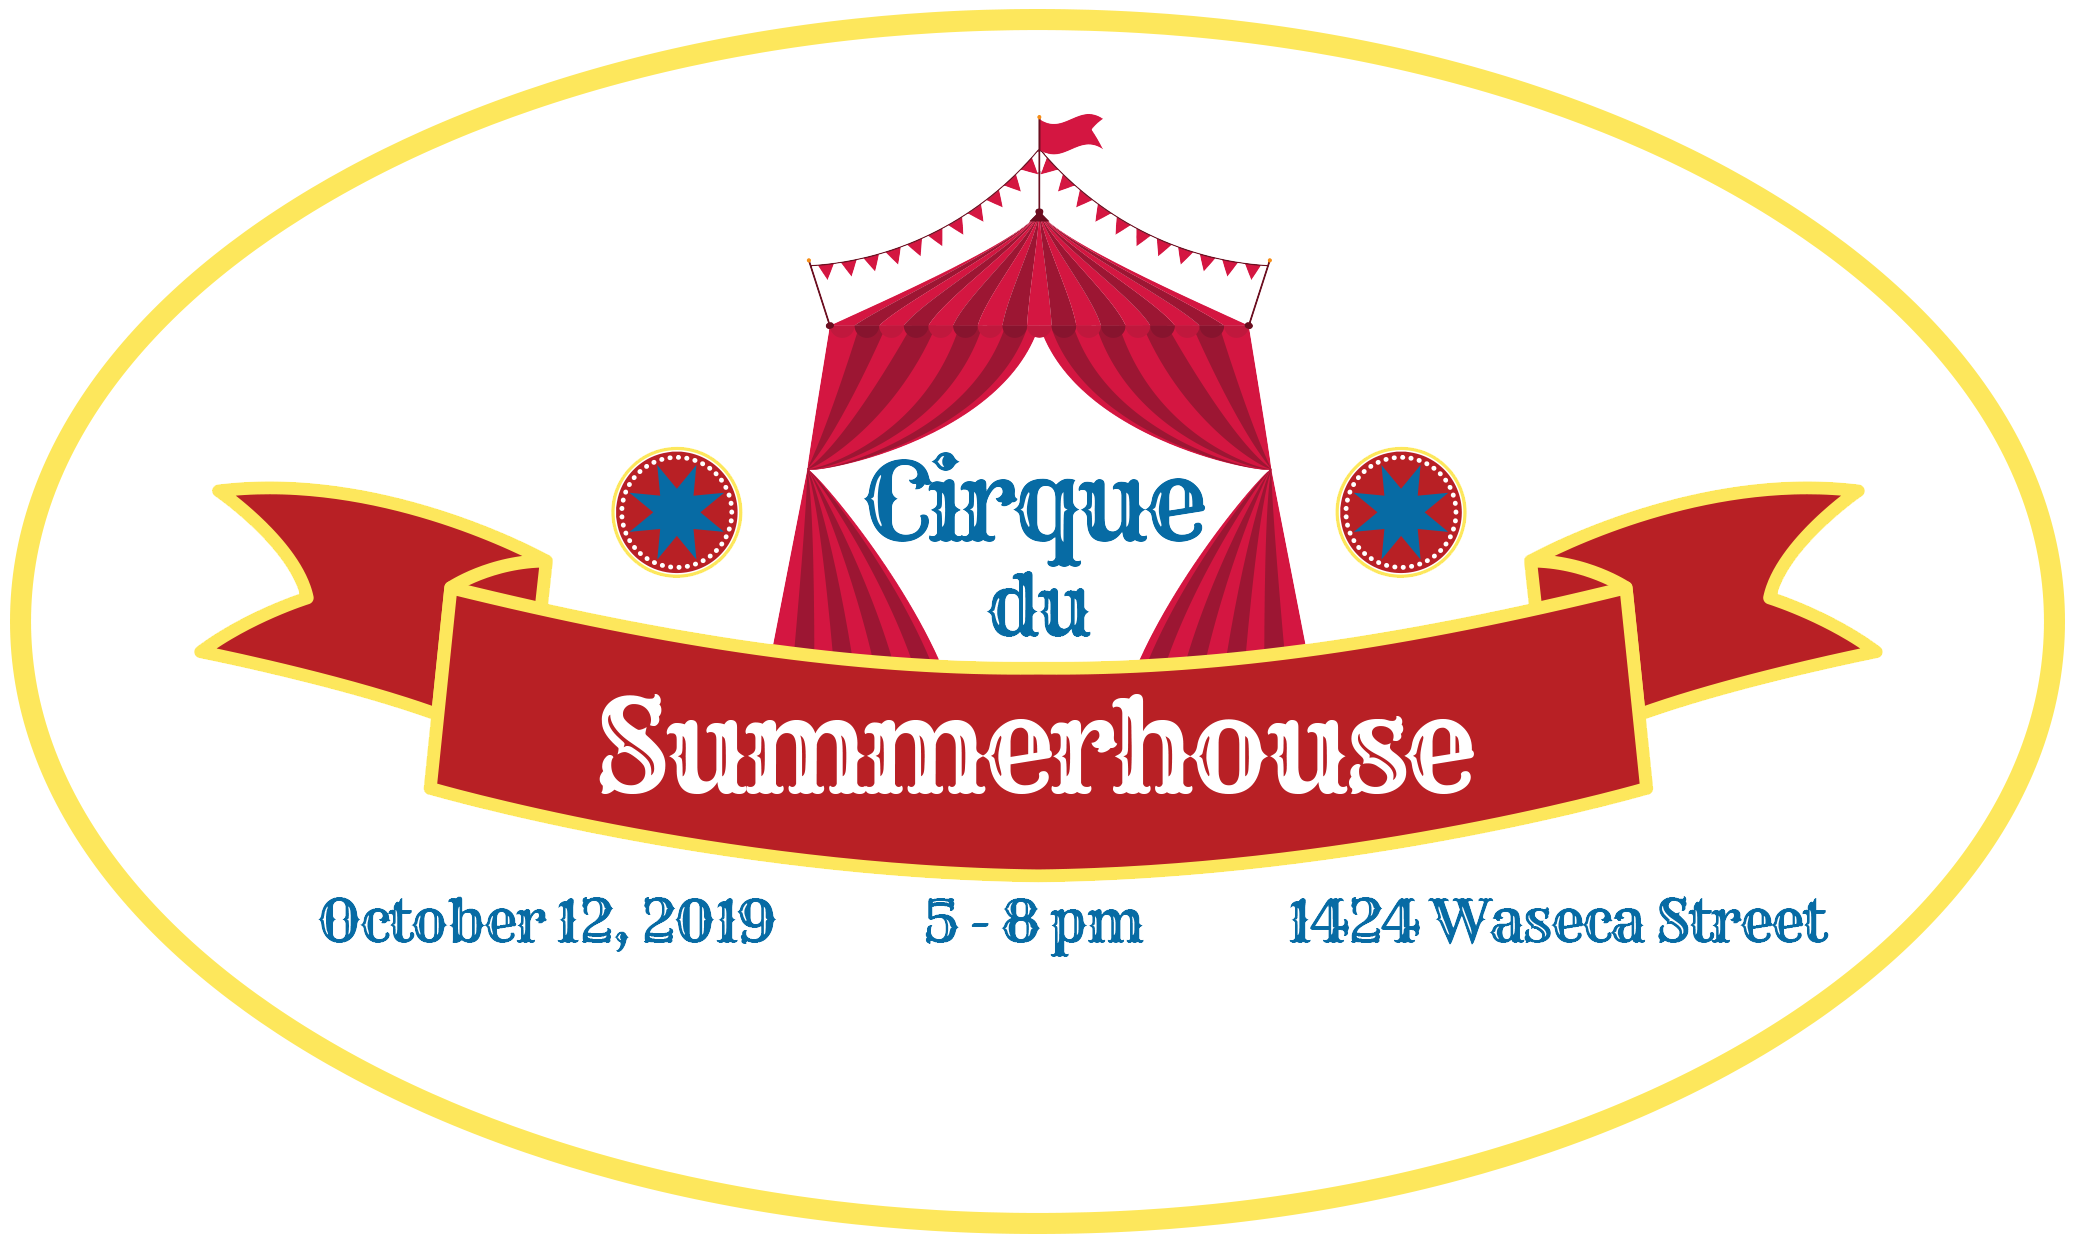 Summerhouse Circus Seal